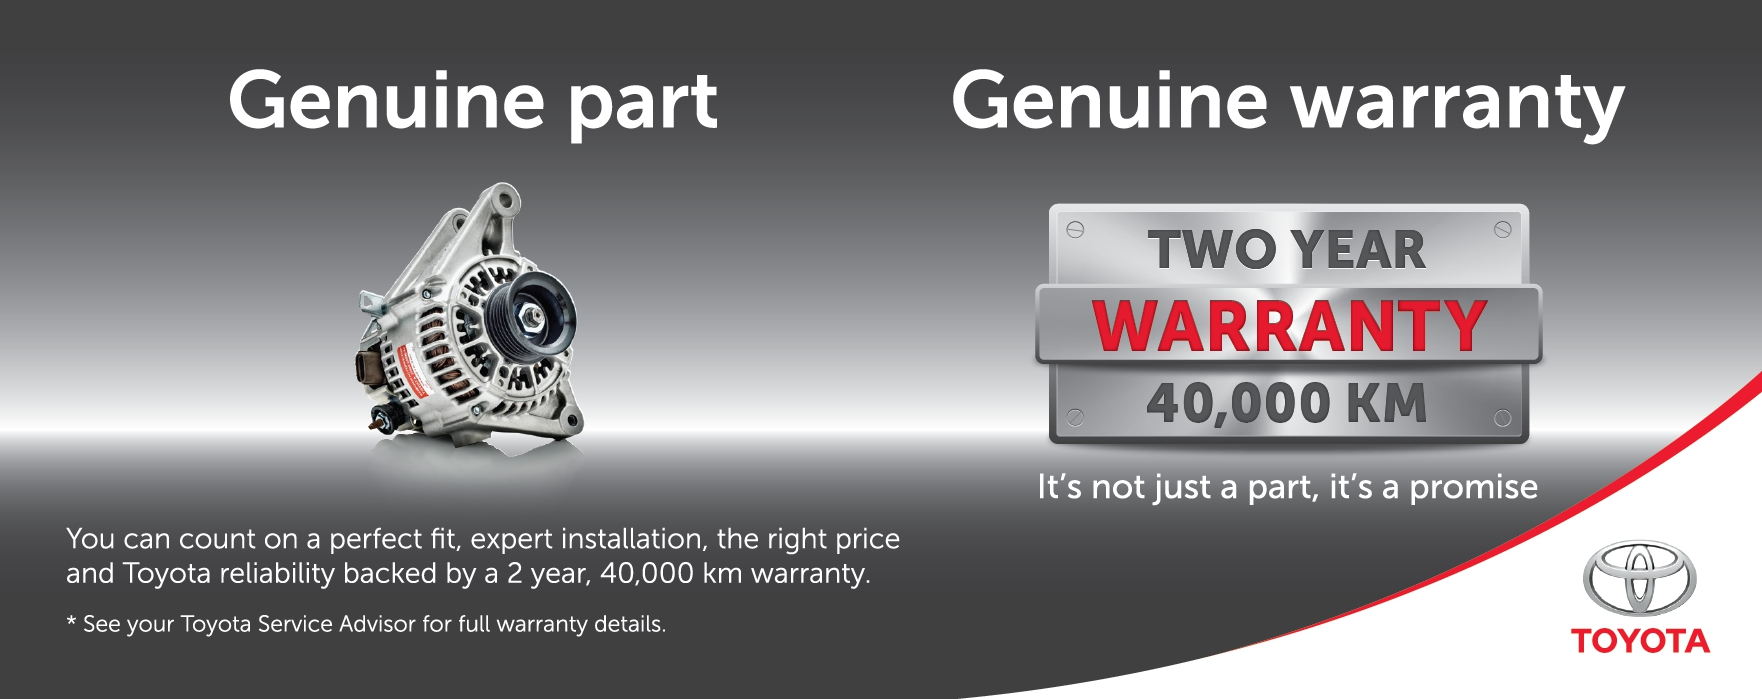 toyota-genuine-part-warranty-offer